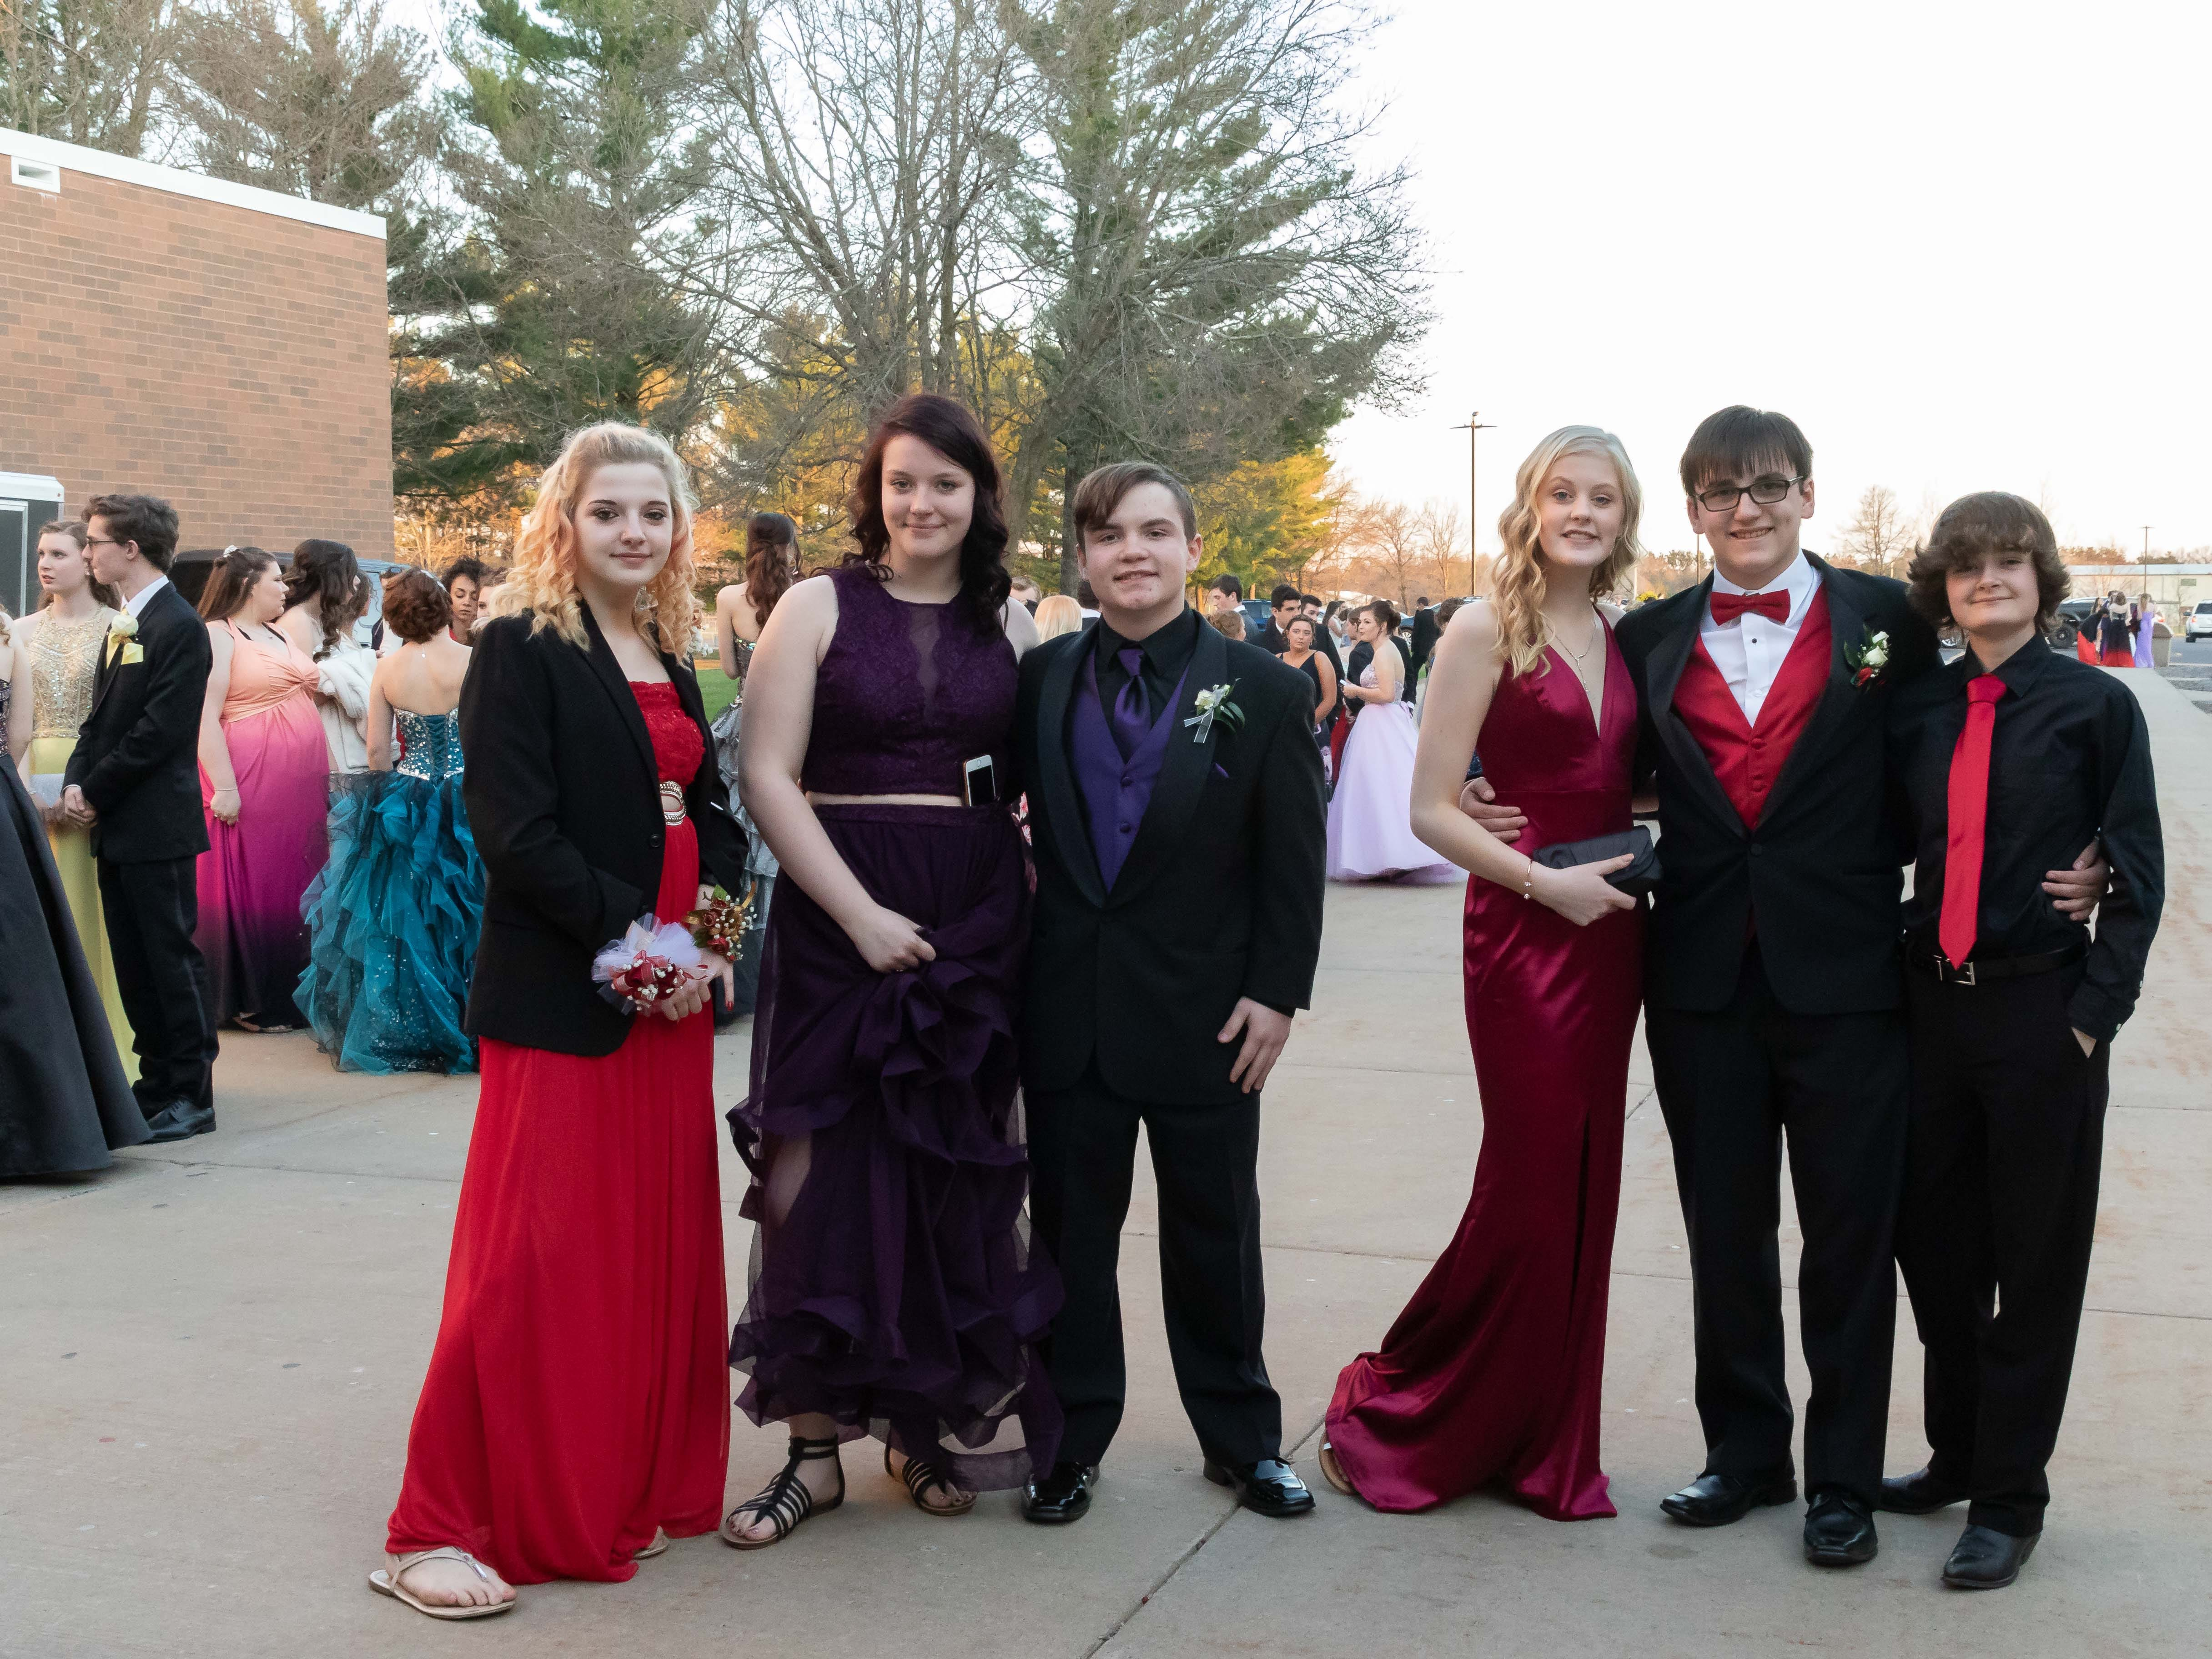 Students arrive for the Lincoln High School prom on Saturday, May 4, 2019, at the high school in Wisconsin Rapids.